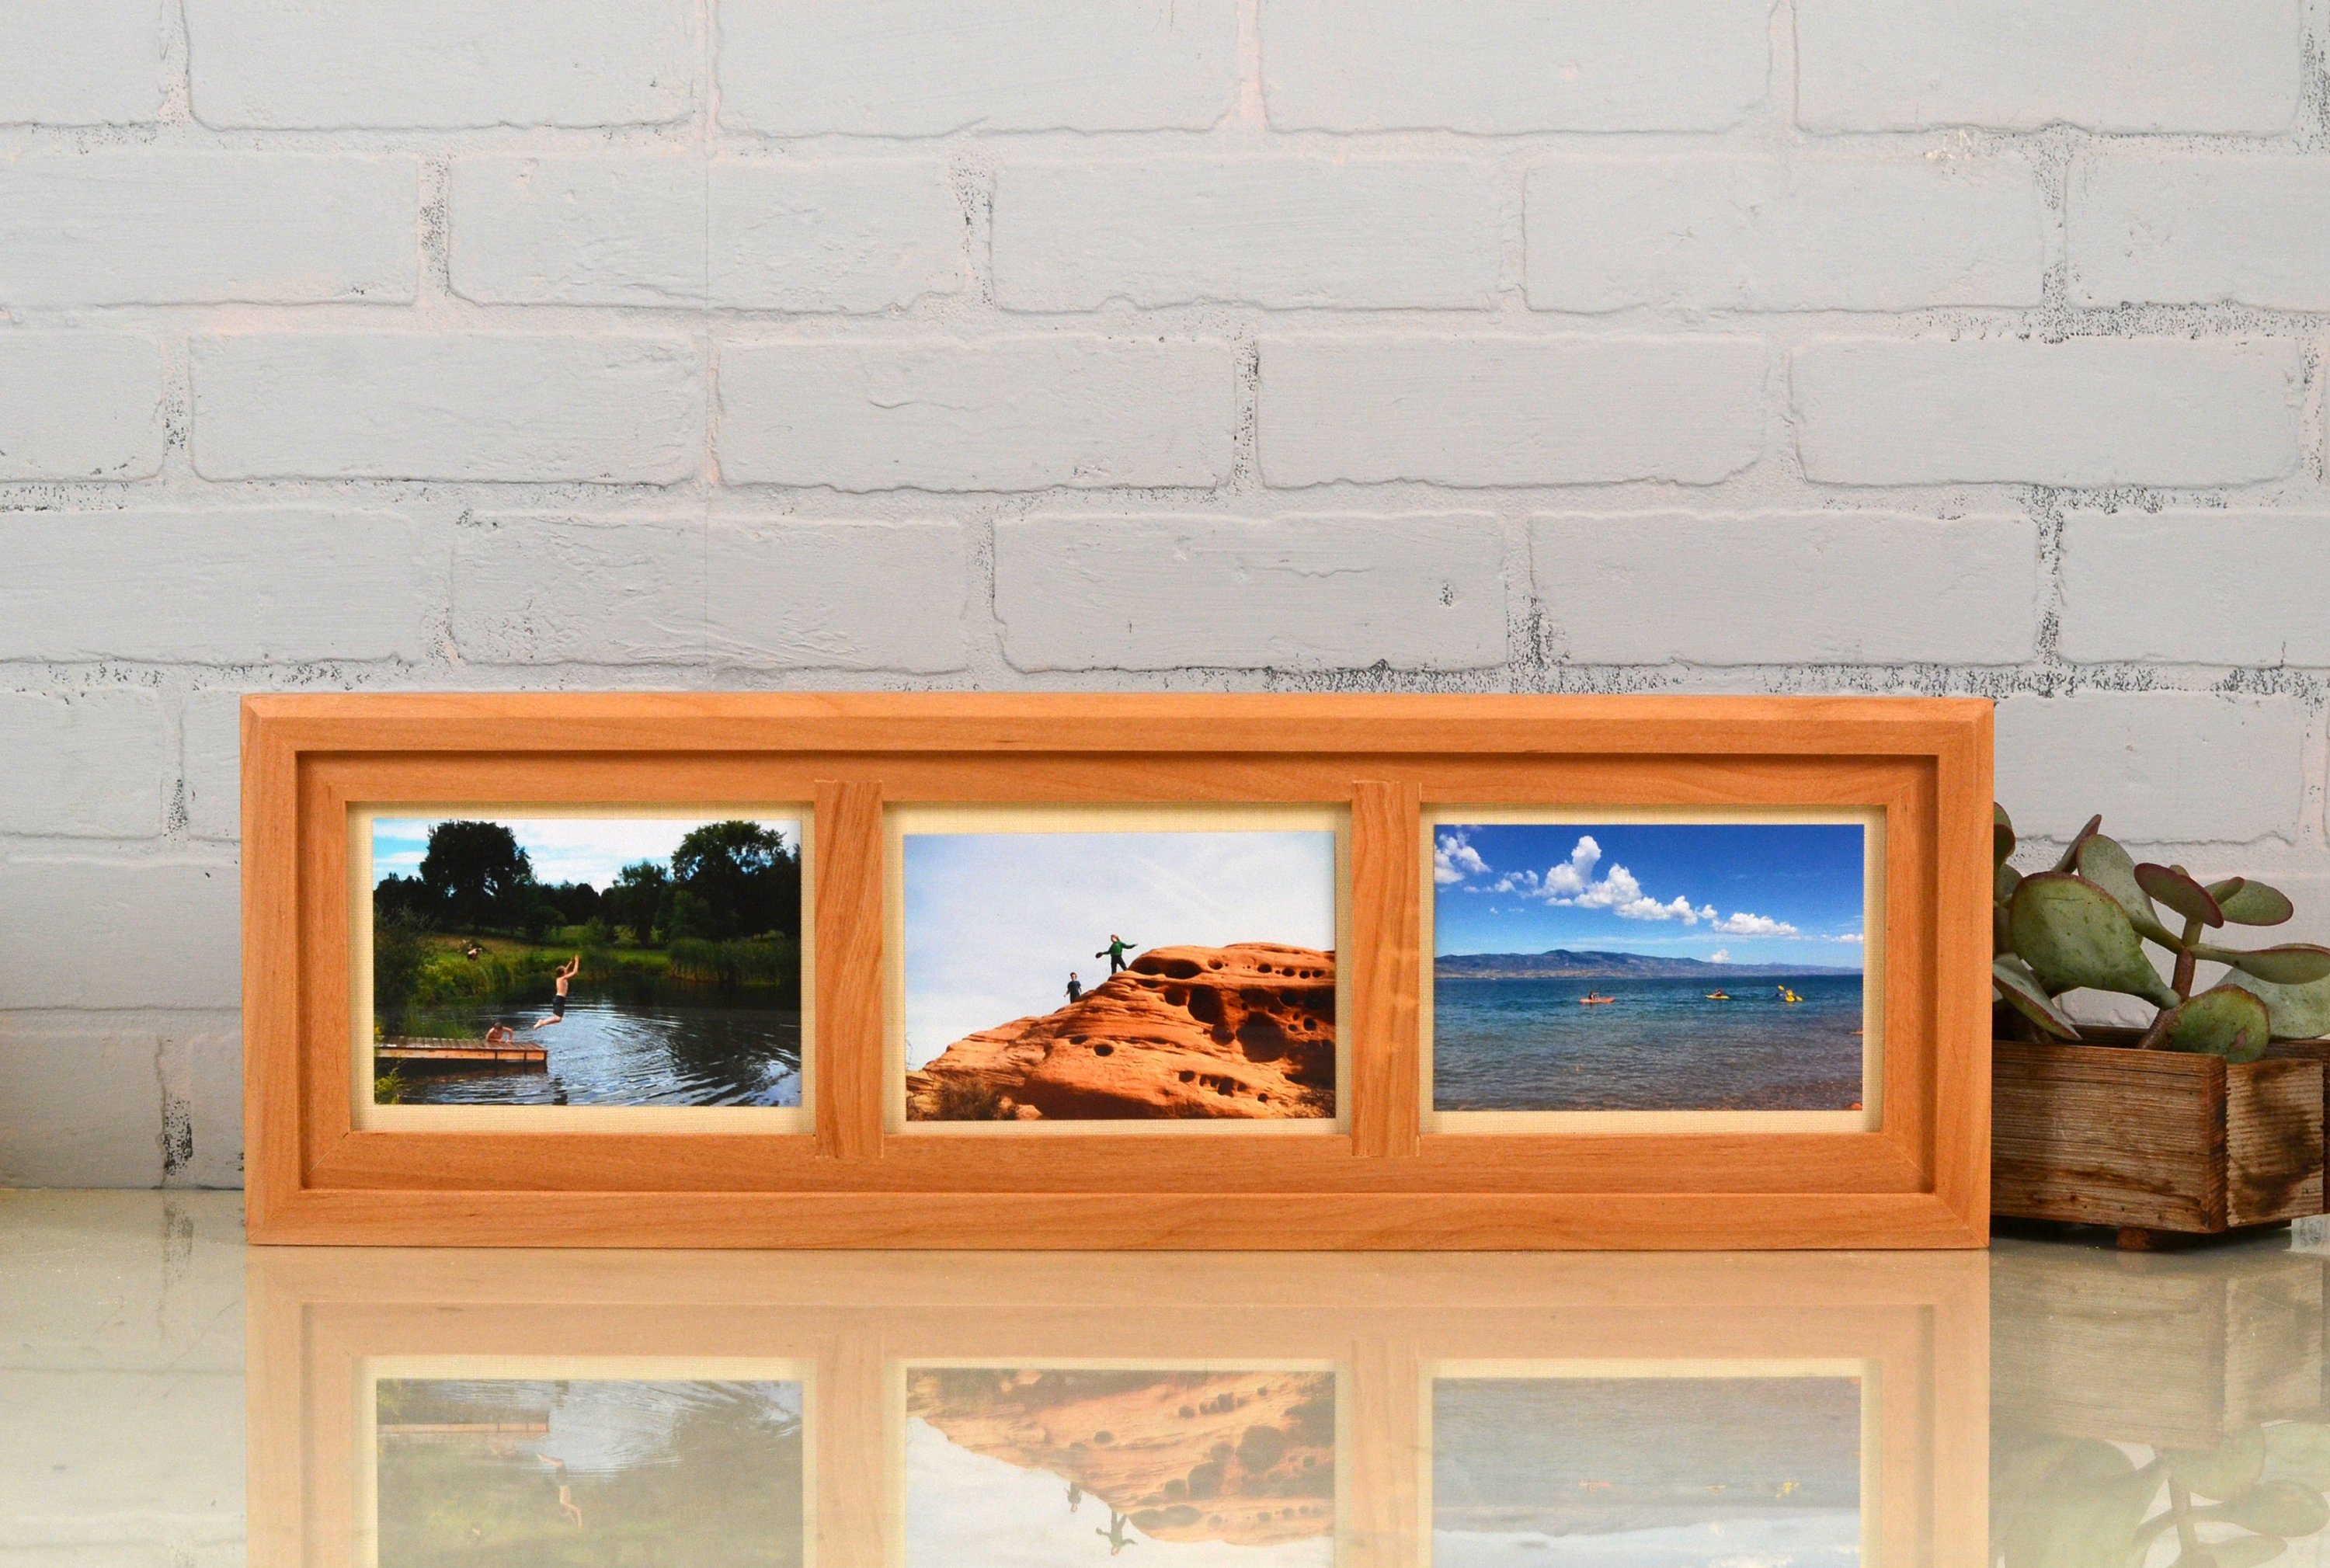 5x7 Collage Frame - Triptych Windows for (3) 5 x 5 Photos with ...